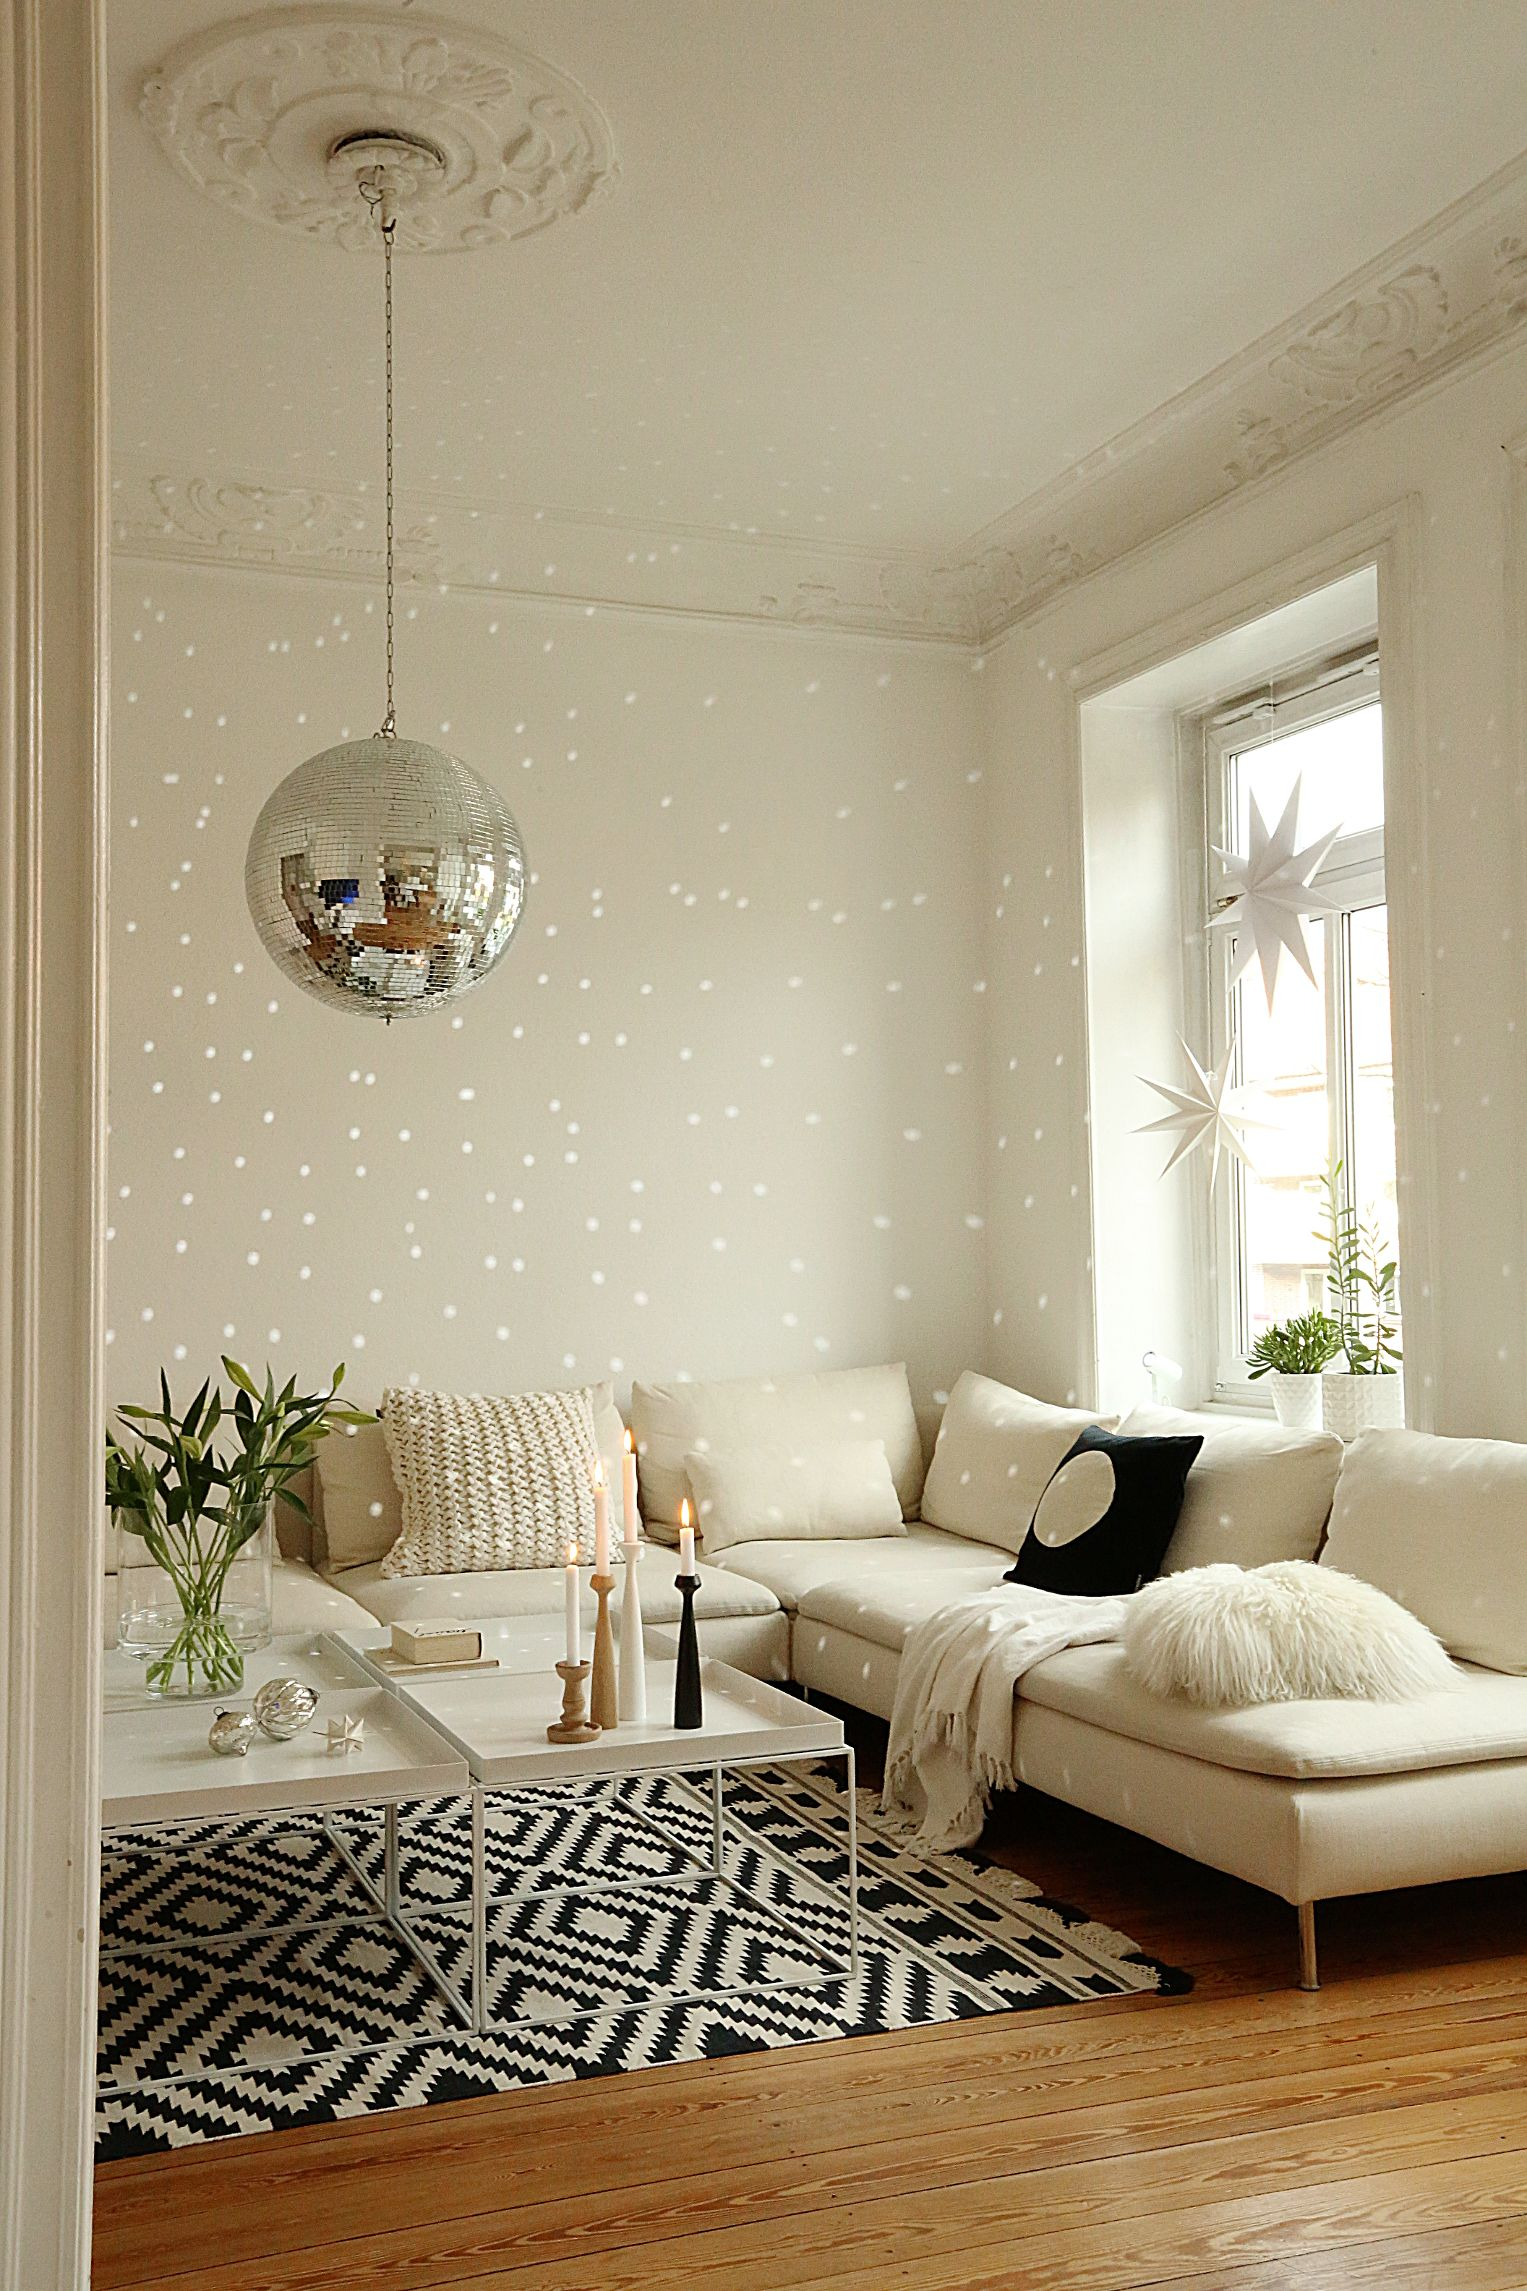 wohnzimmer livingroom hay tray ikea s derhamn disco discokugel lounge altbau wohnen. Black Bedroom Furniture Sets. Home Design Ideas